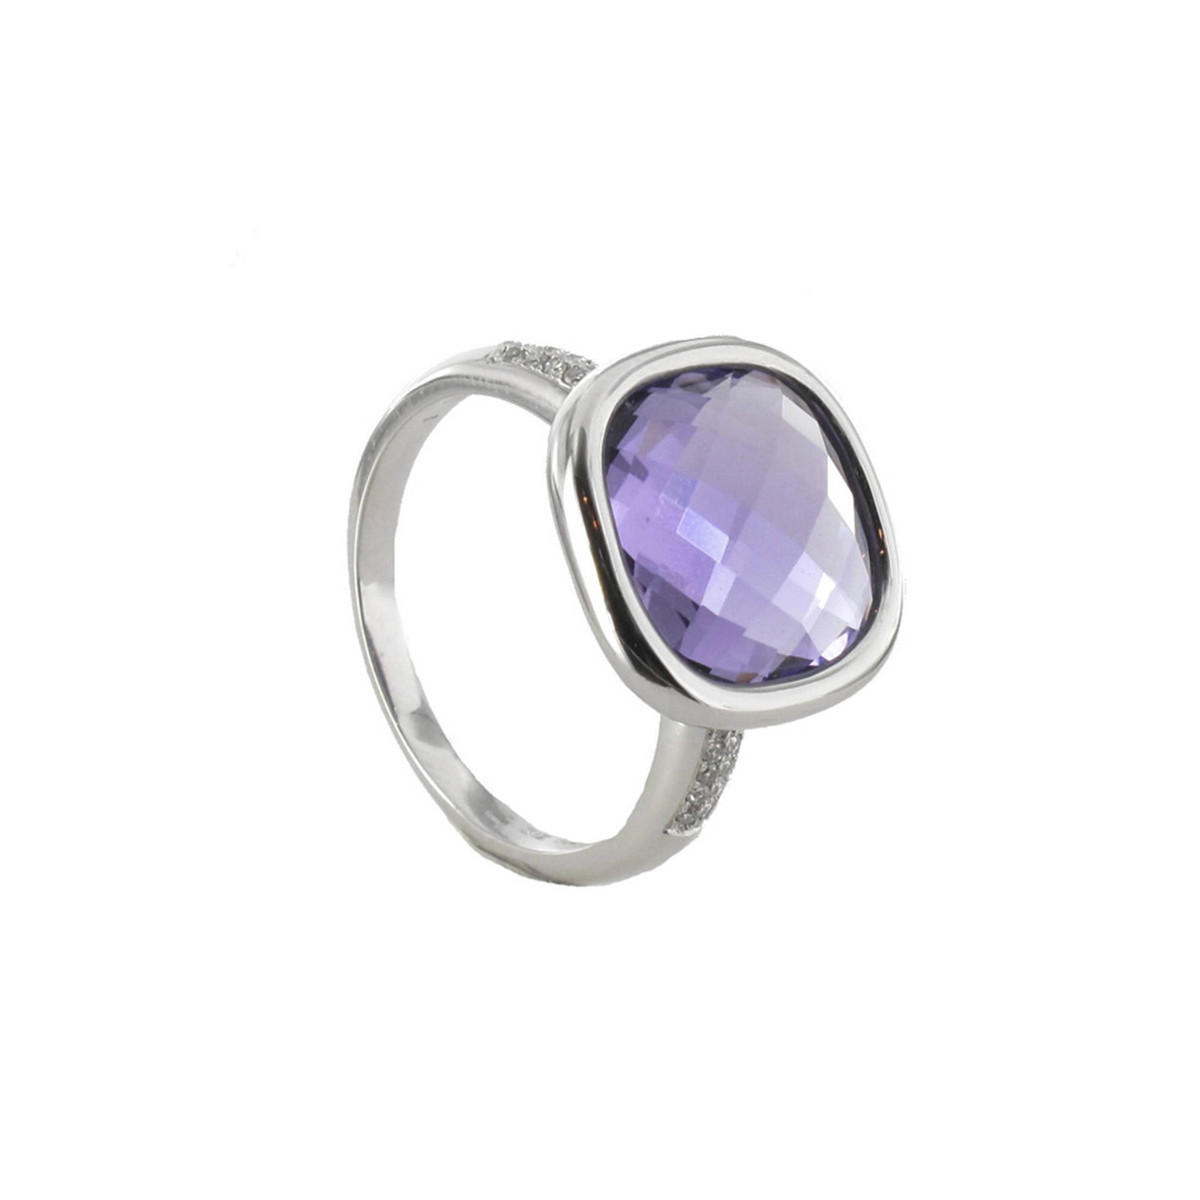 FINE GOLD RING WITH AMETHYST AND DIAMONDS